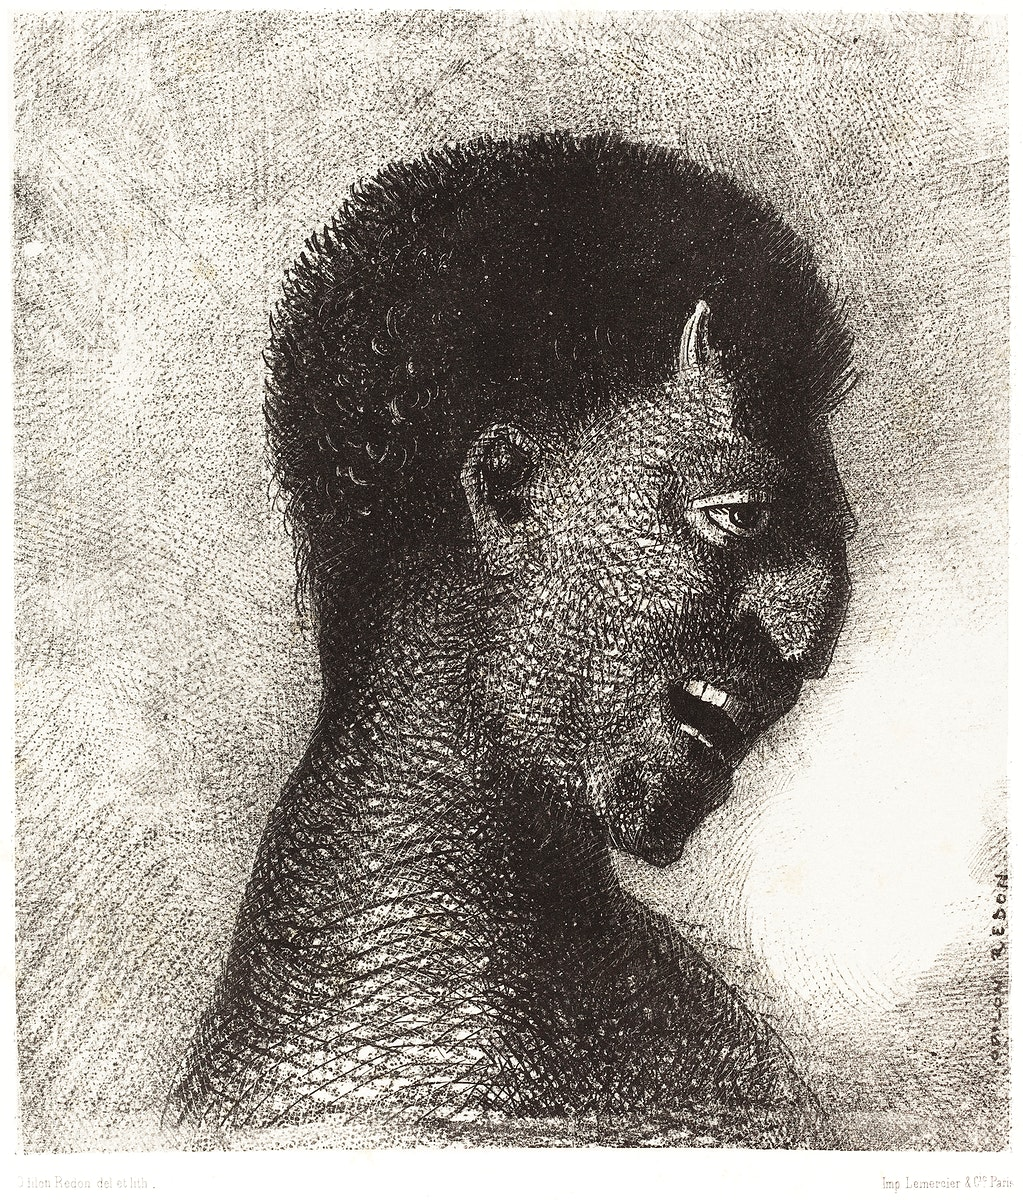 The Satyr with the Cynical Smile (1883) by Odilon Redon. Original from the National Gallery of Art. Digitally enhanced by…